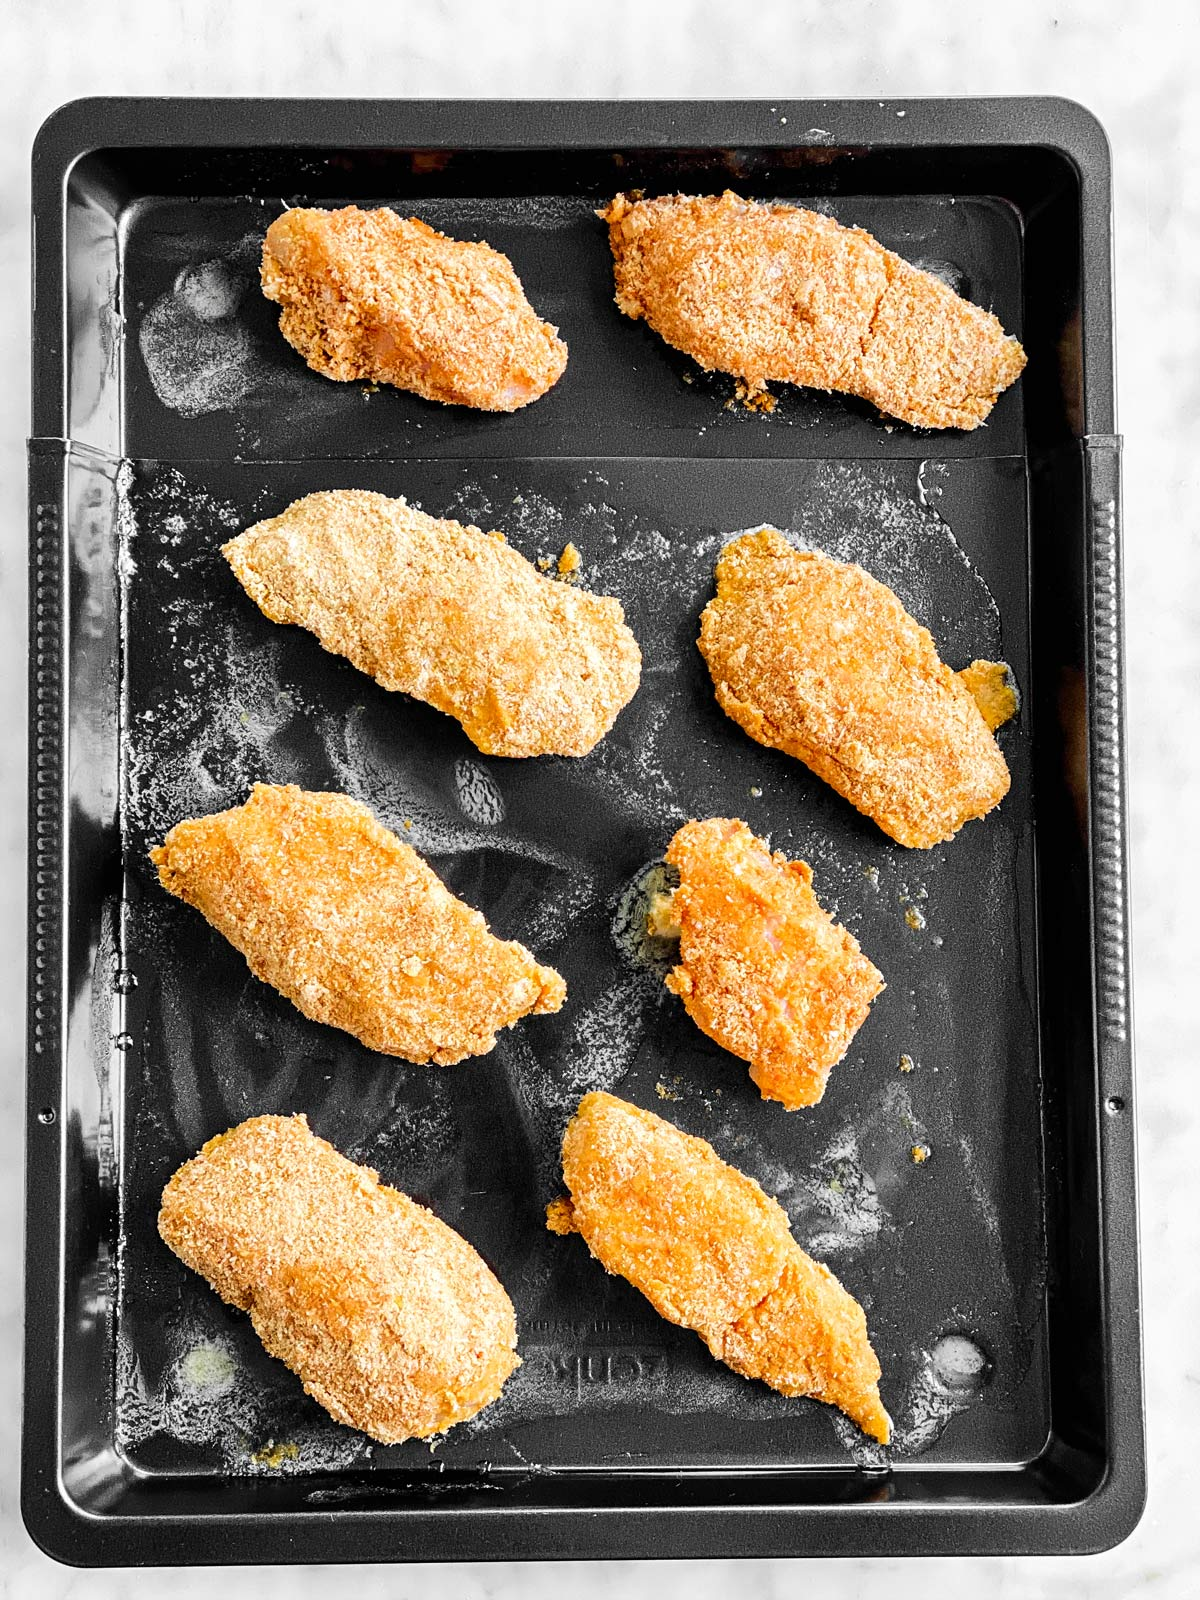 black pan with unbaked breaded fish